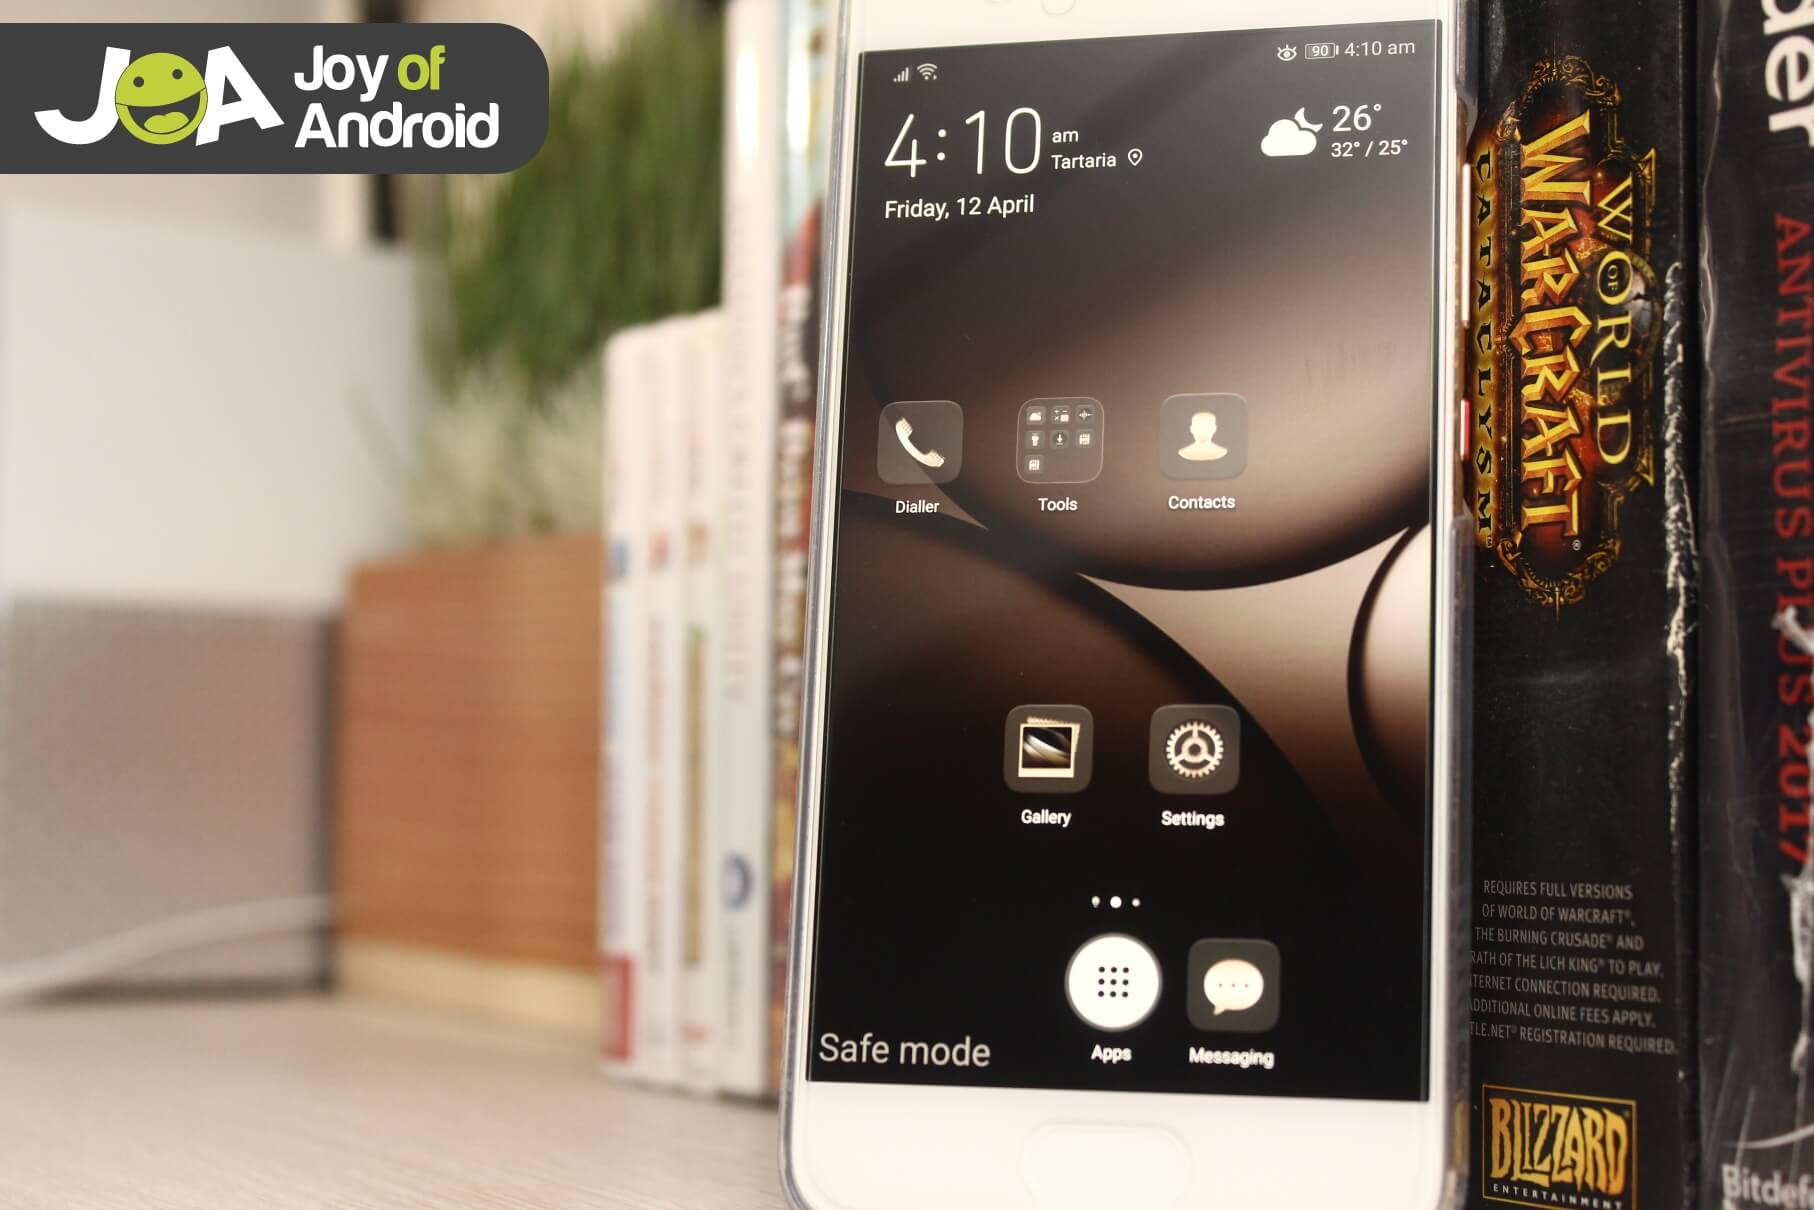 android safe mode smartphone huawei phone joy of android